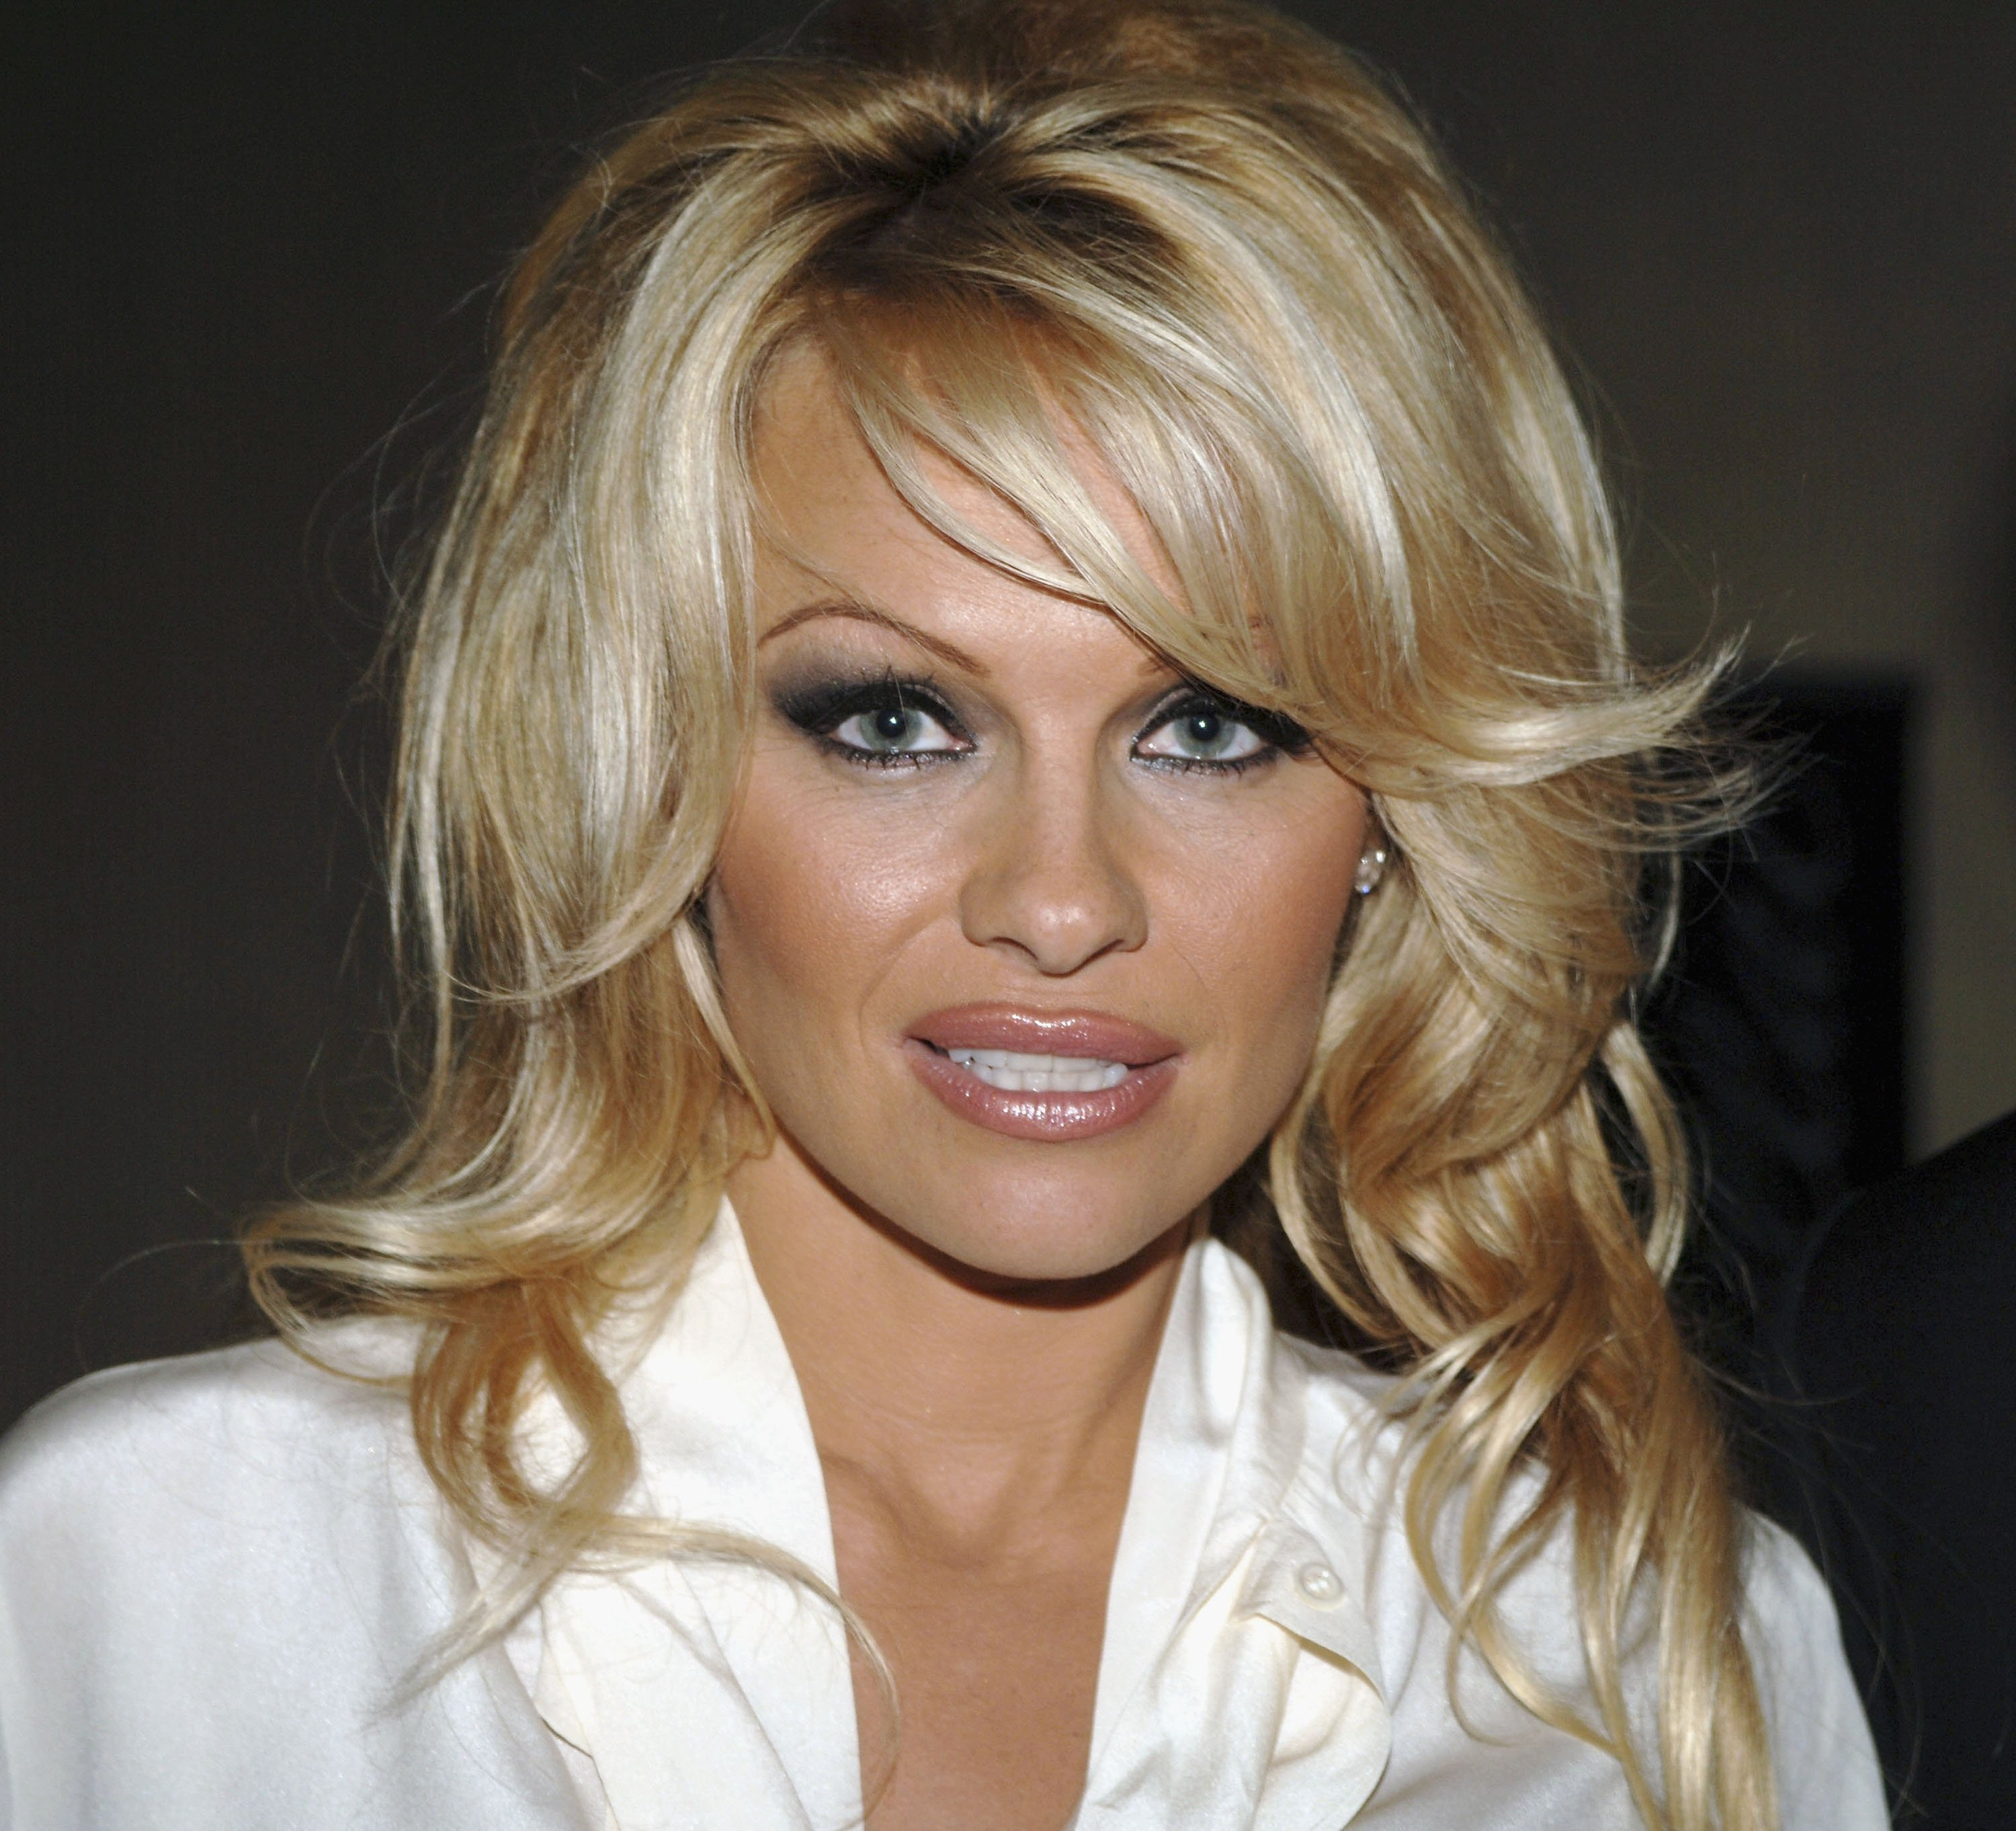 Pamela Anderson attends The Museum of Television & Radio Annual Los Angeles Gala at the Beverly Hilton Hotel on November 7, 2005 in Beverly Hills, California | Photo: Getty Images